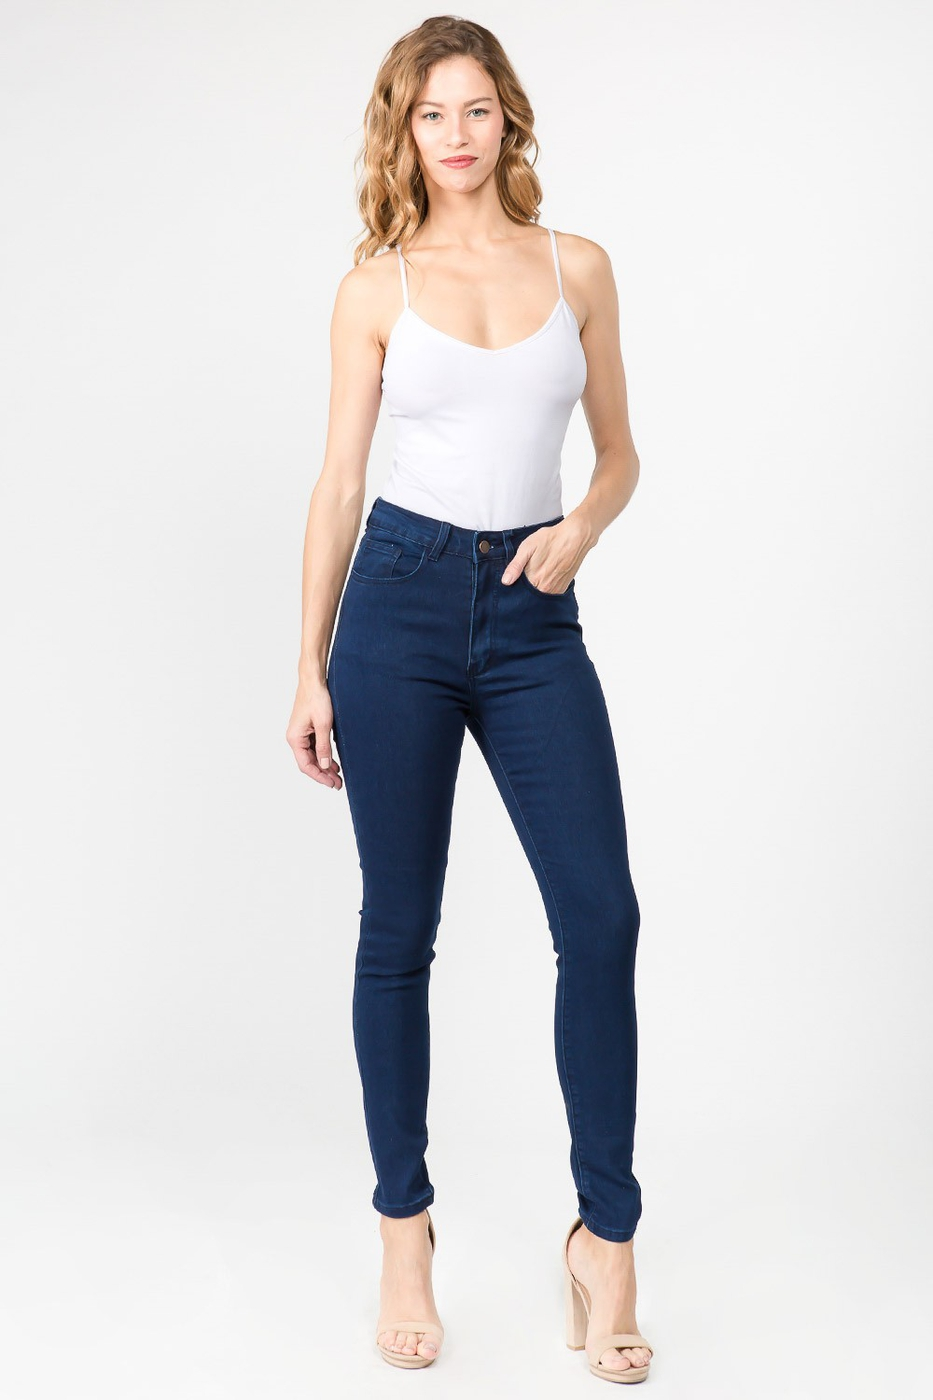 PLUS SIZE HIGH WAIST DENIM SKINNY  - orangeshine.com